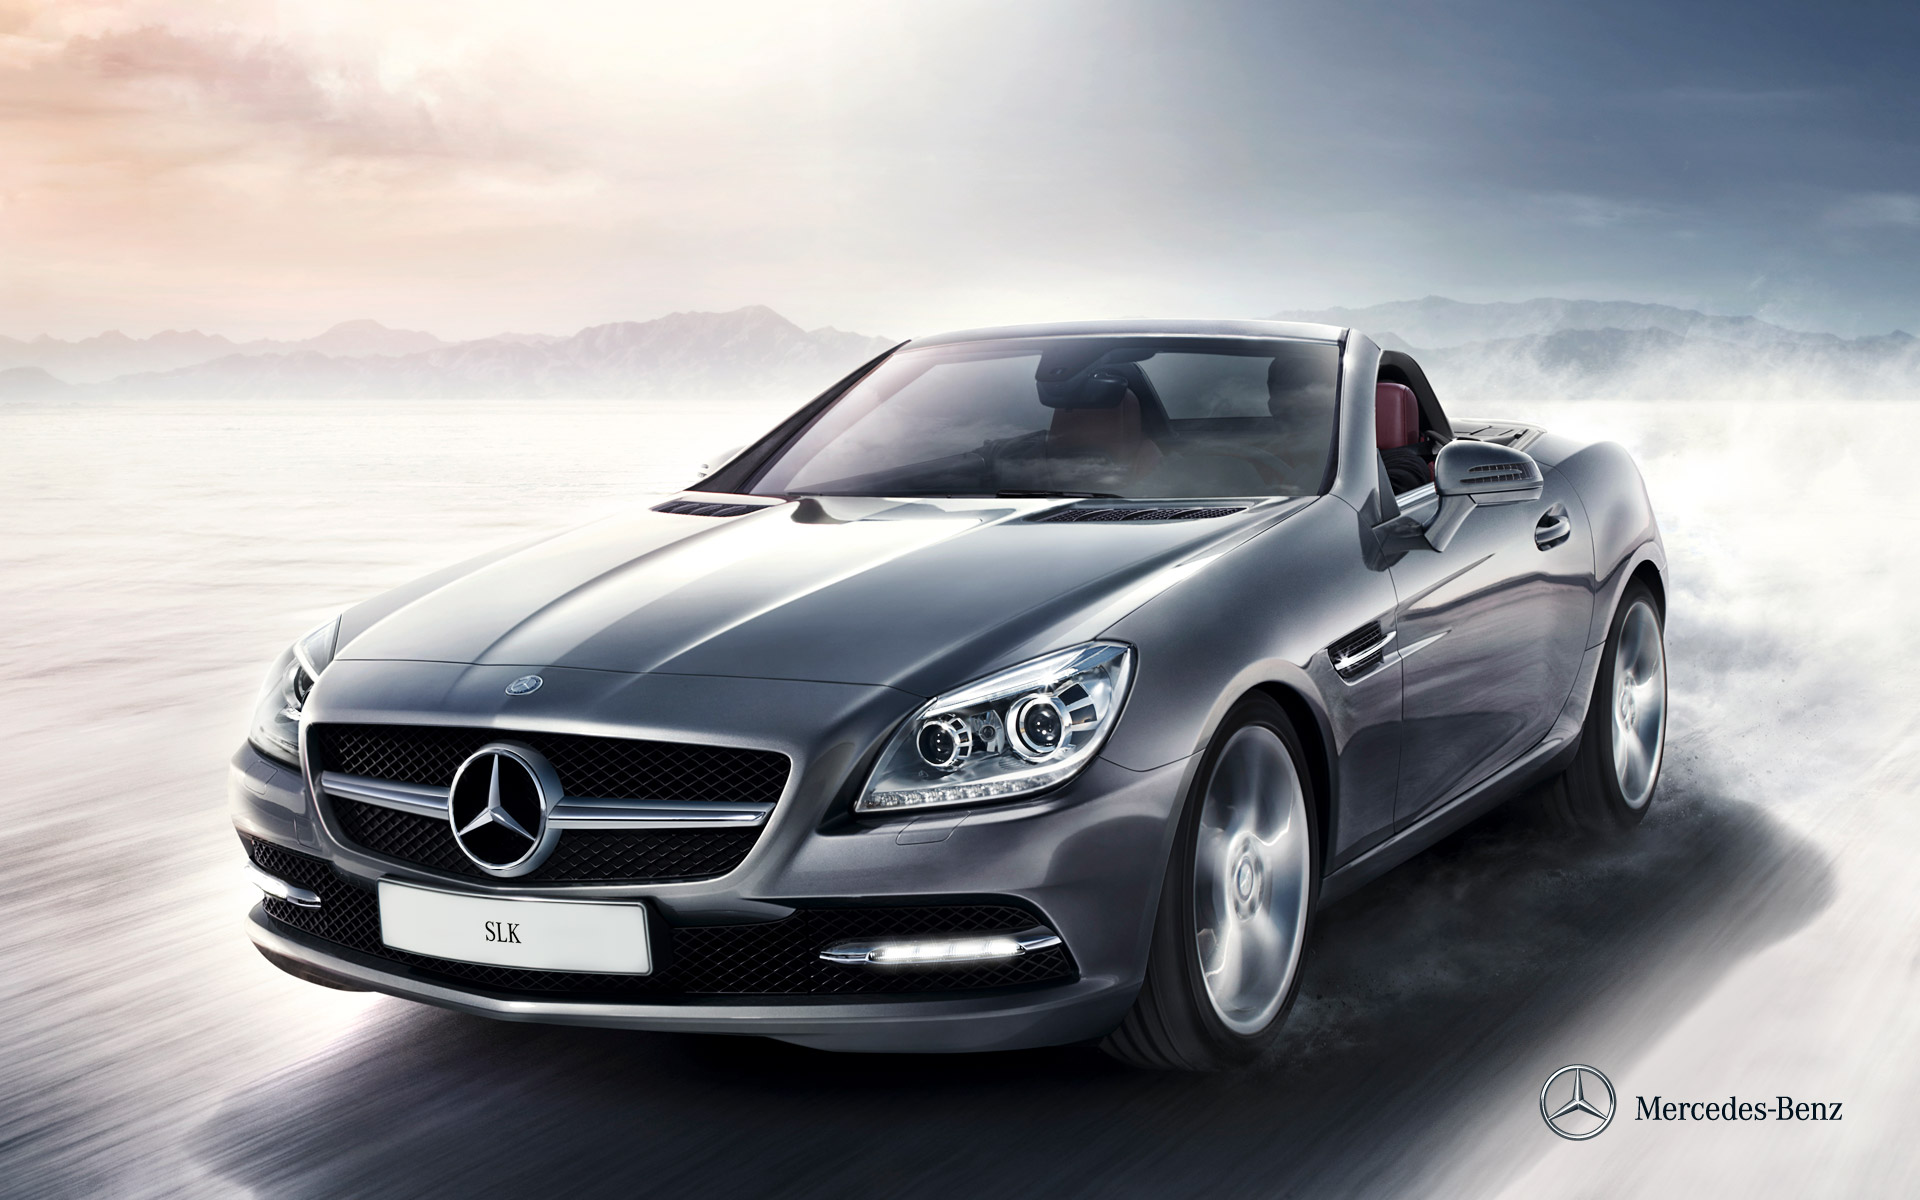 Mercedes benz slk class 2012 slk 250 in uae new car for Mercedes benz 2012 price